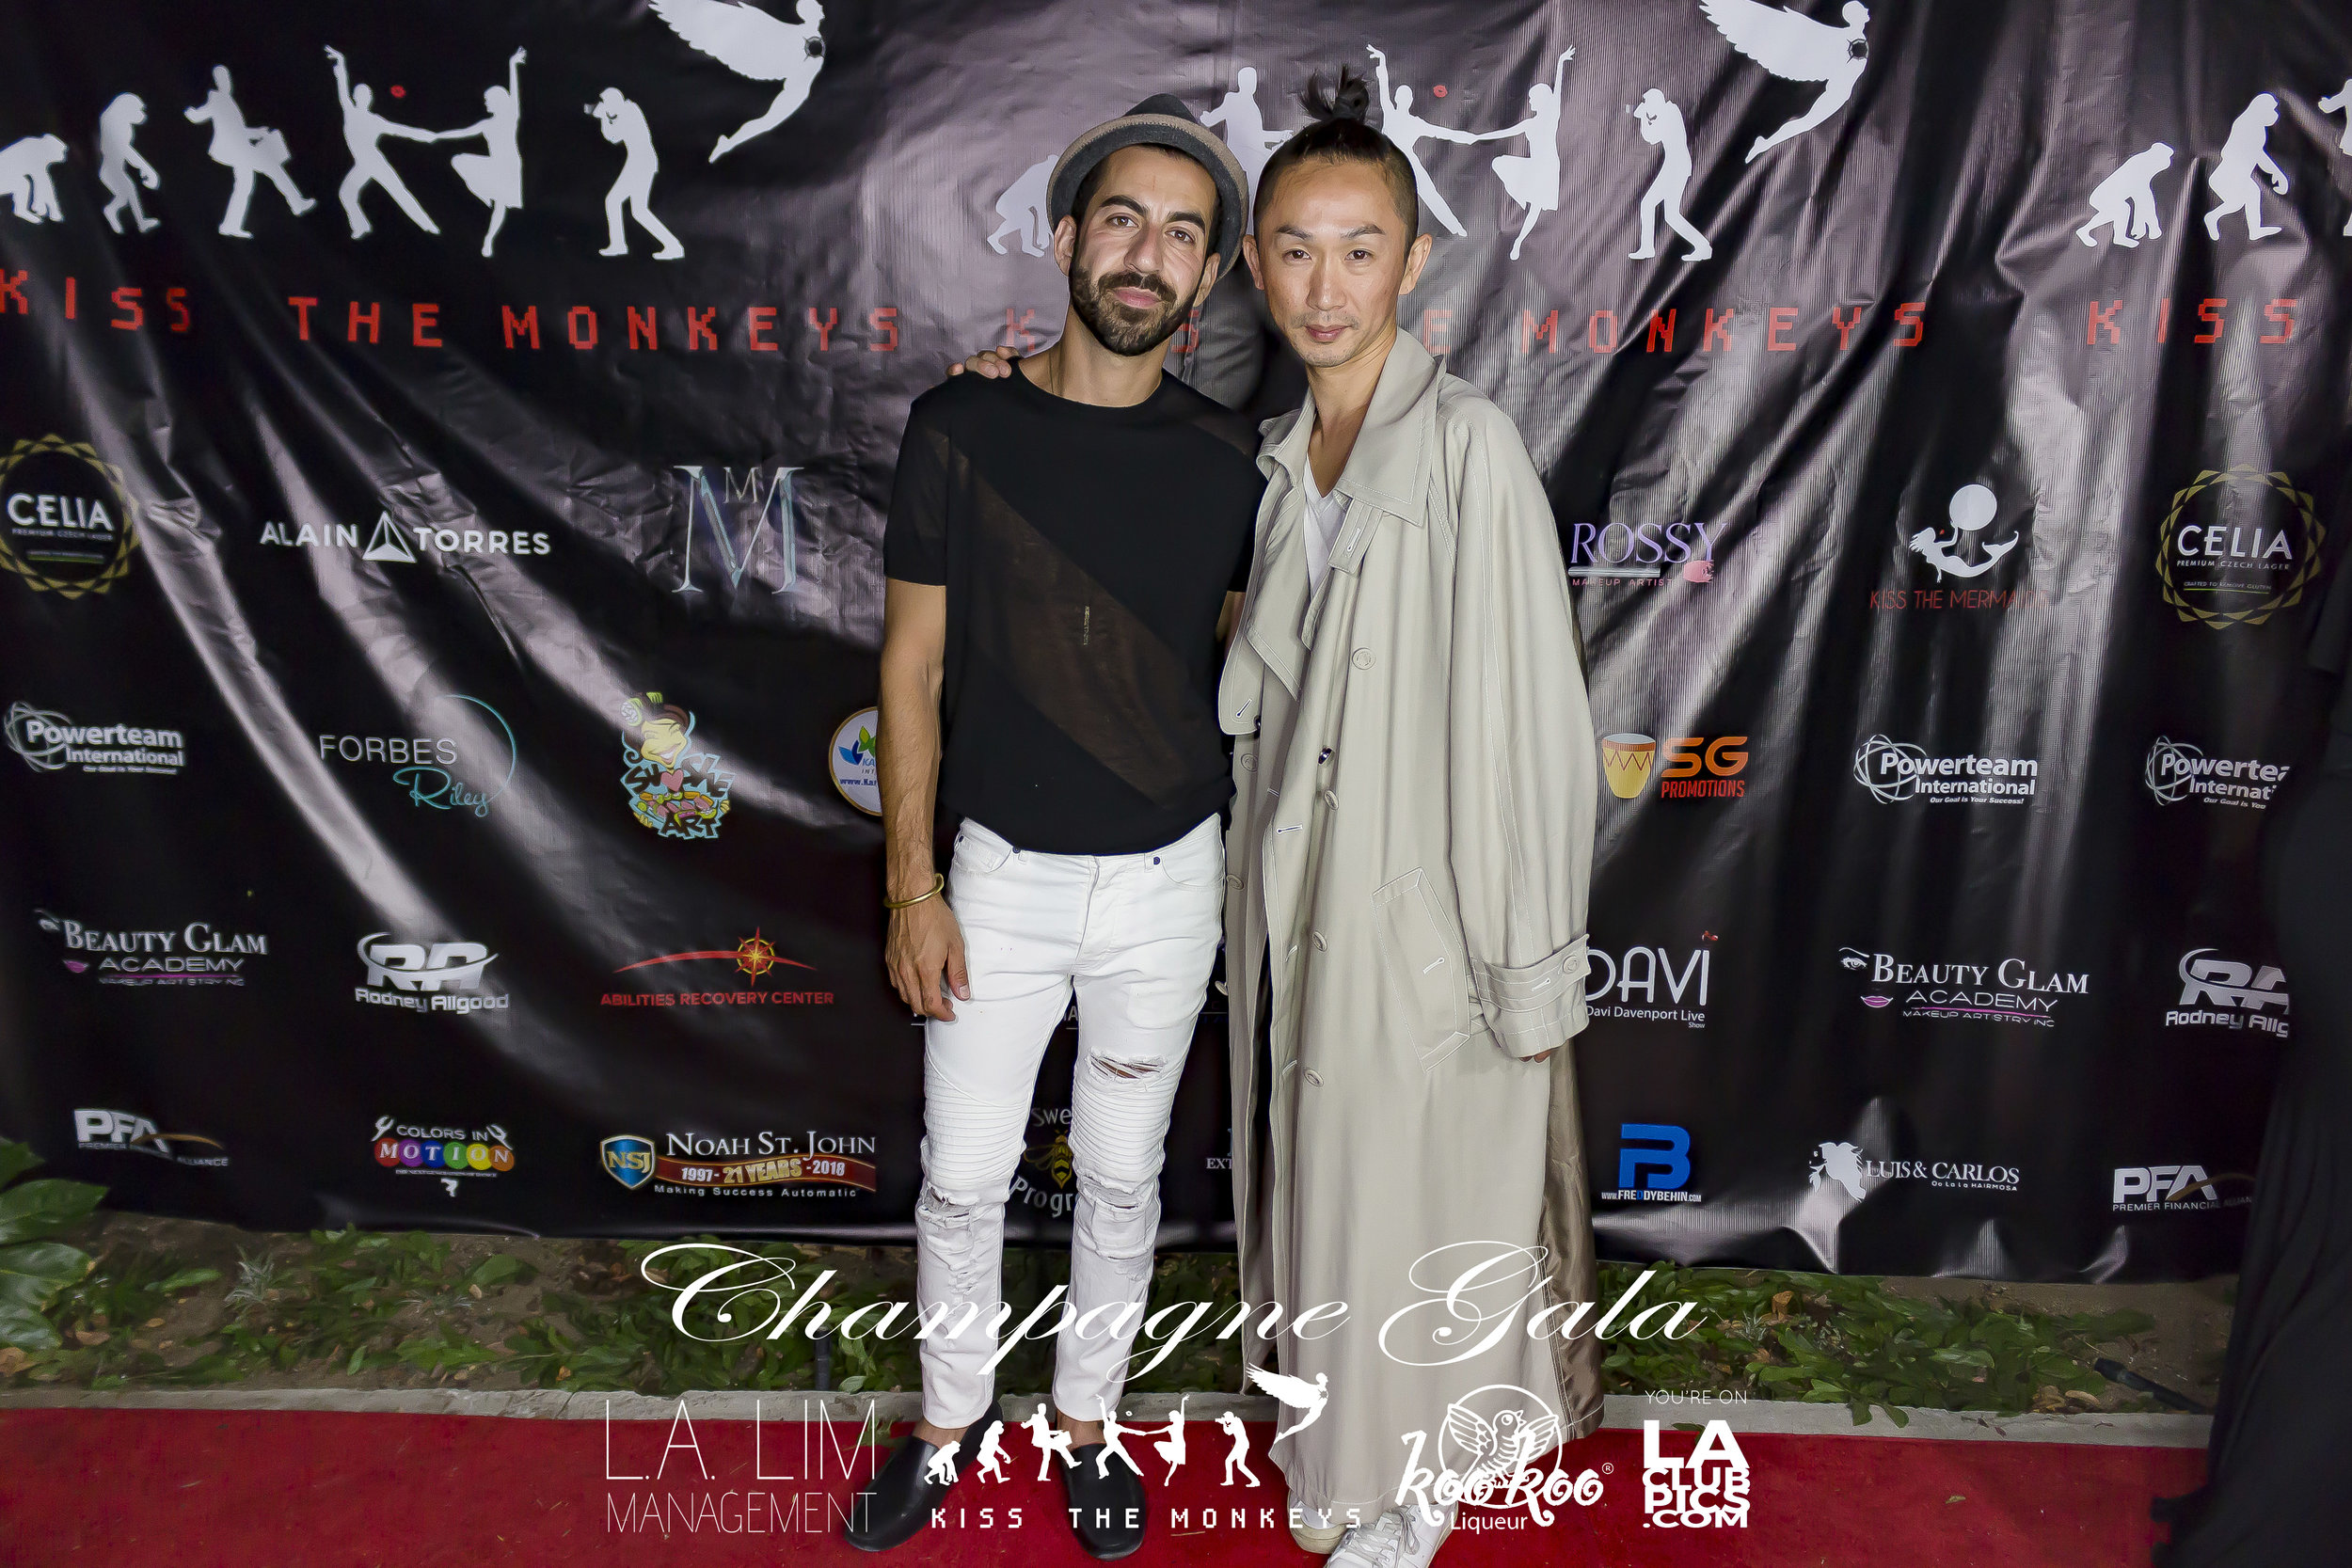 Kiss The Monkeys - Champagne Gala - 07-21-18_21.jpg